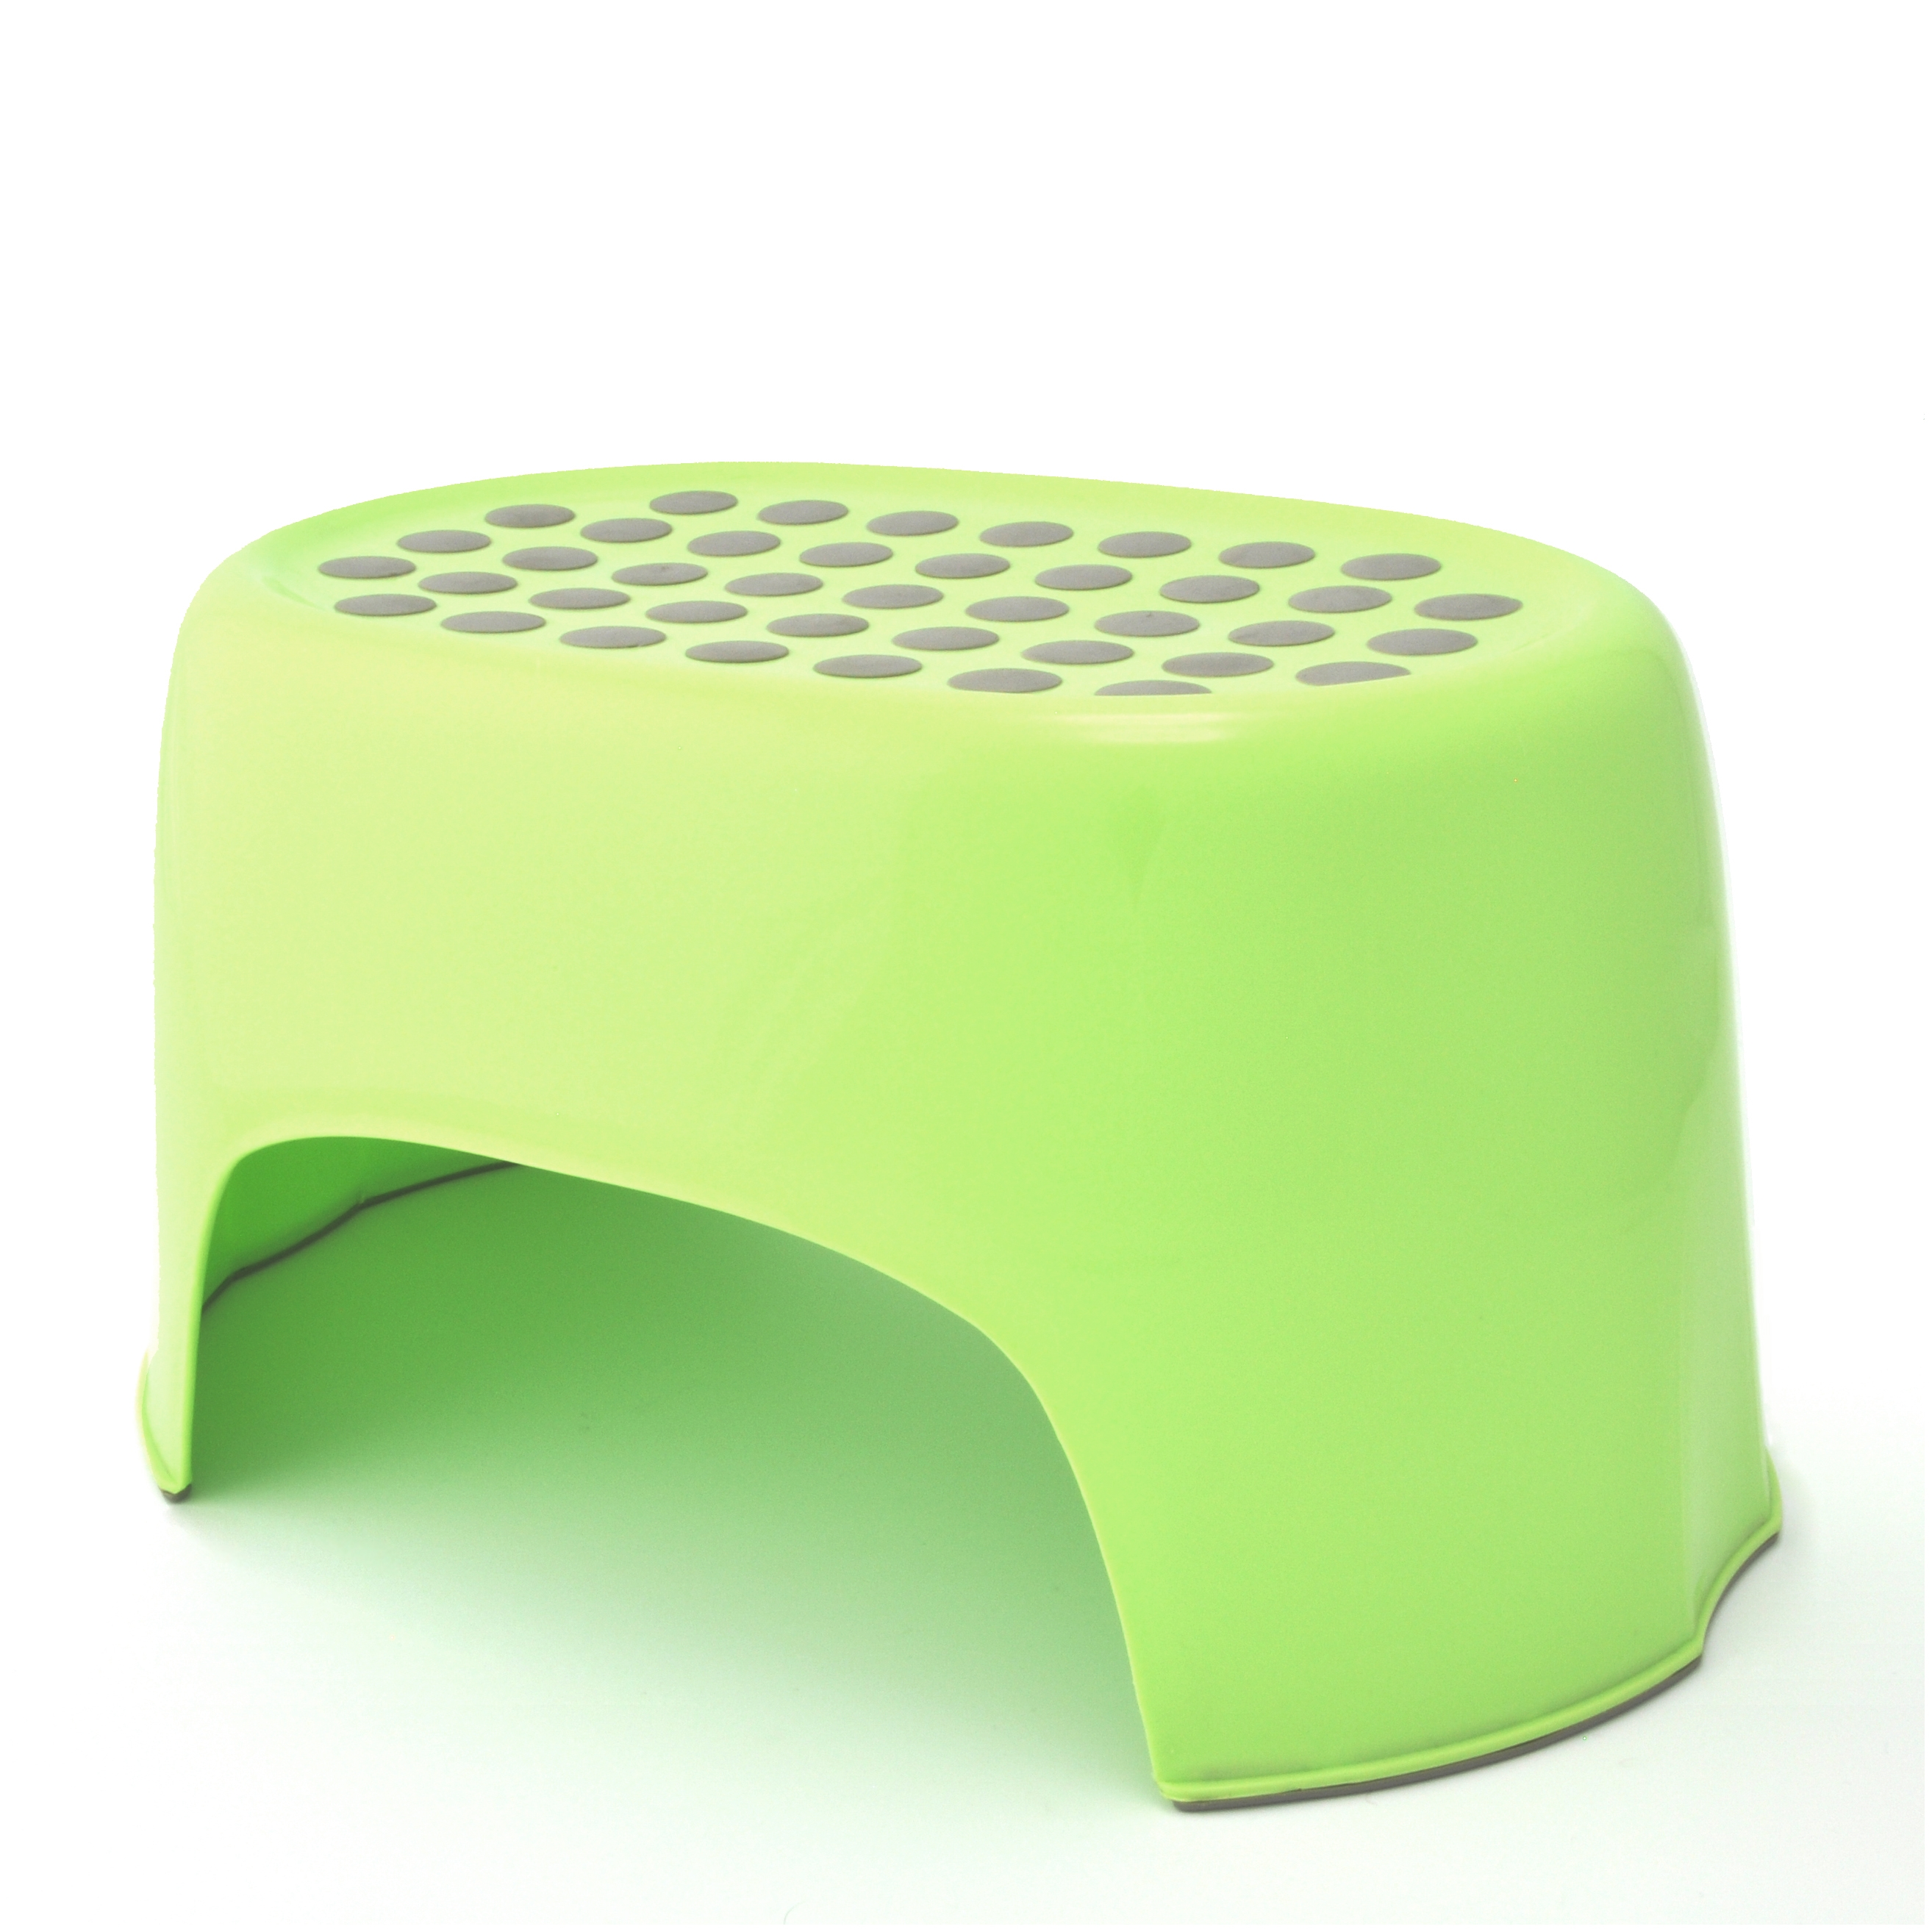 Jahgoo Step Stool #Review #Giveaway - Mommies with Cents